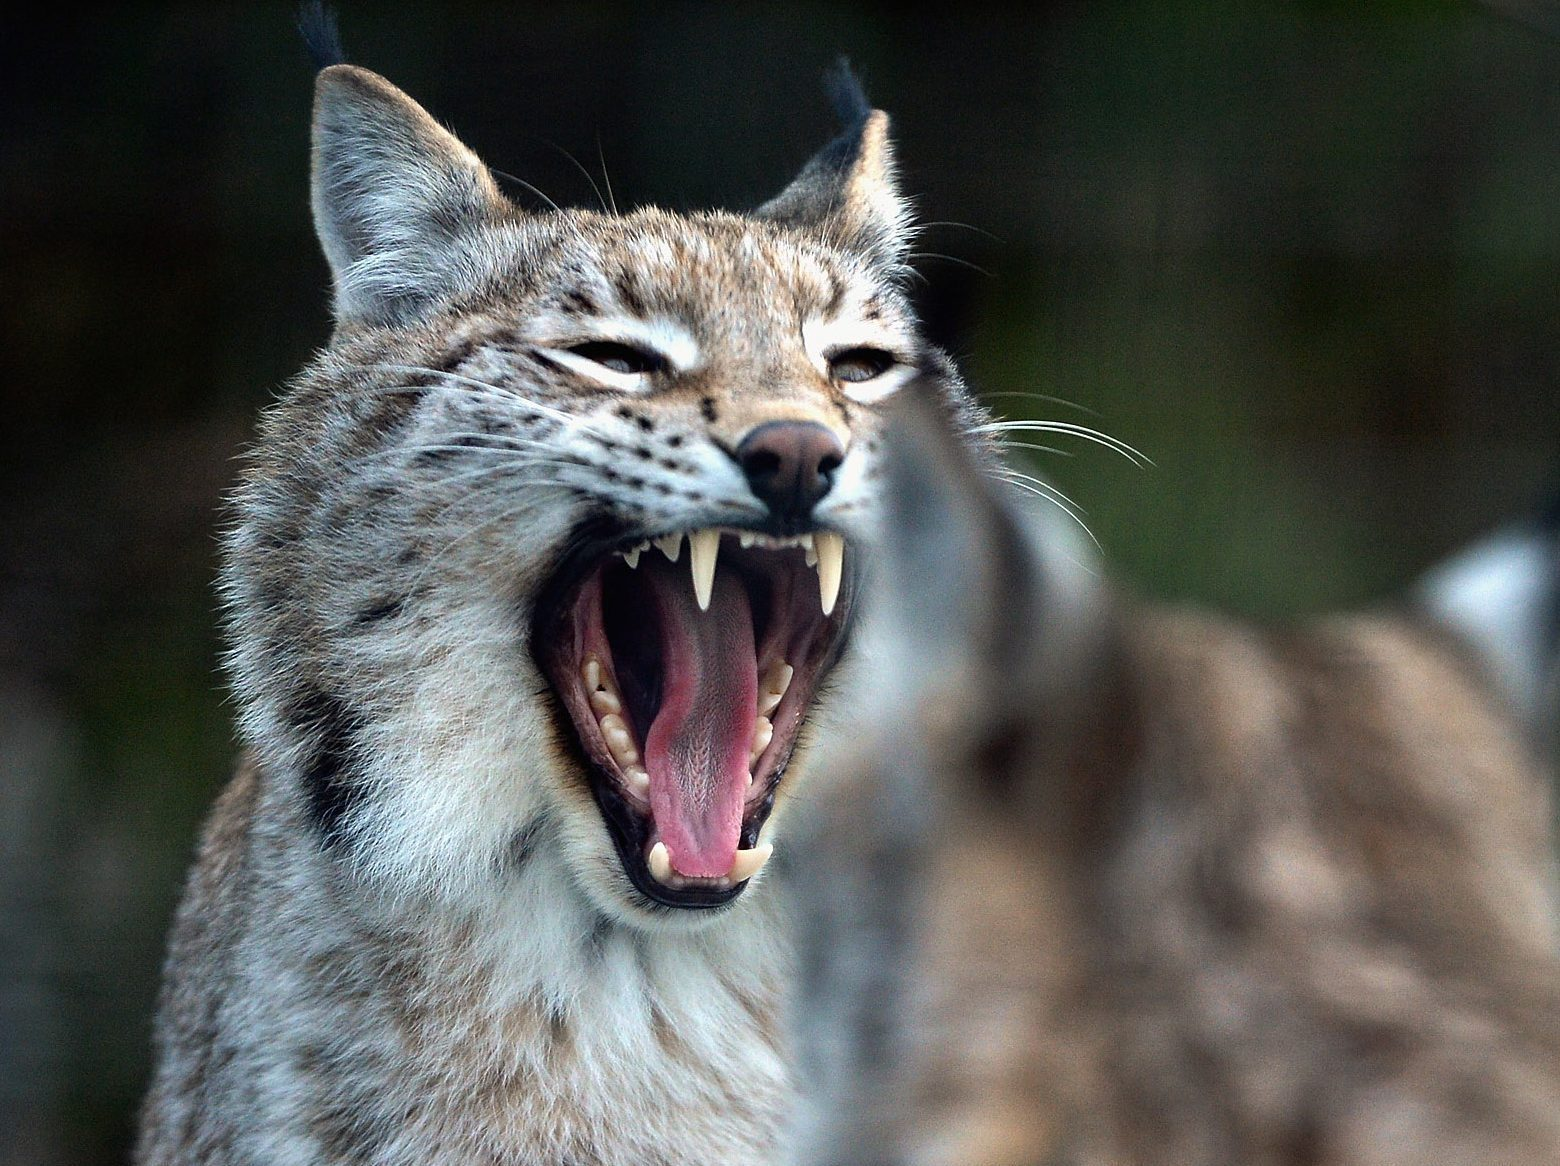 The government will not support any attempt to introduce new predatory species such as the lynx to Scotland.